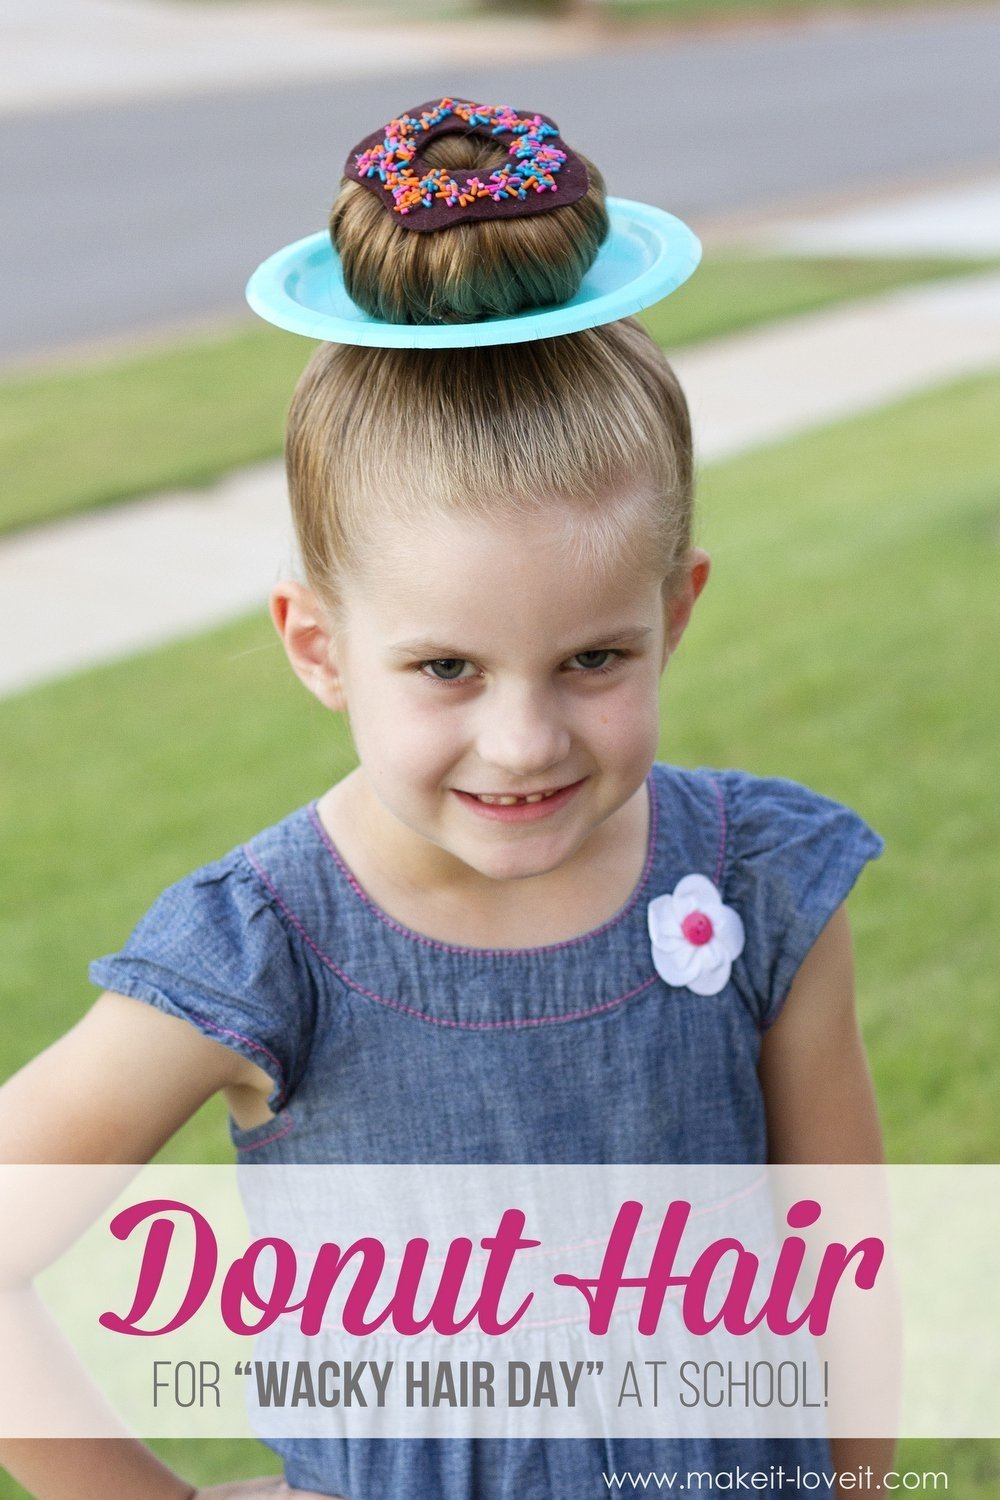 10 Most Recommended Crazy Hair Ideas For School 25 clever ideas for wacky hair day at school including 18